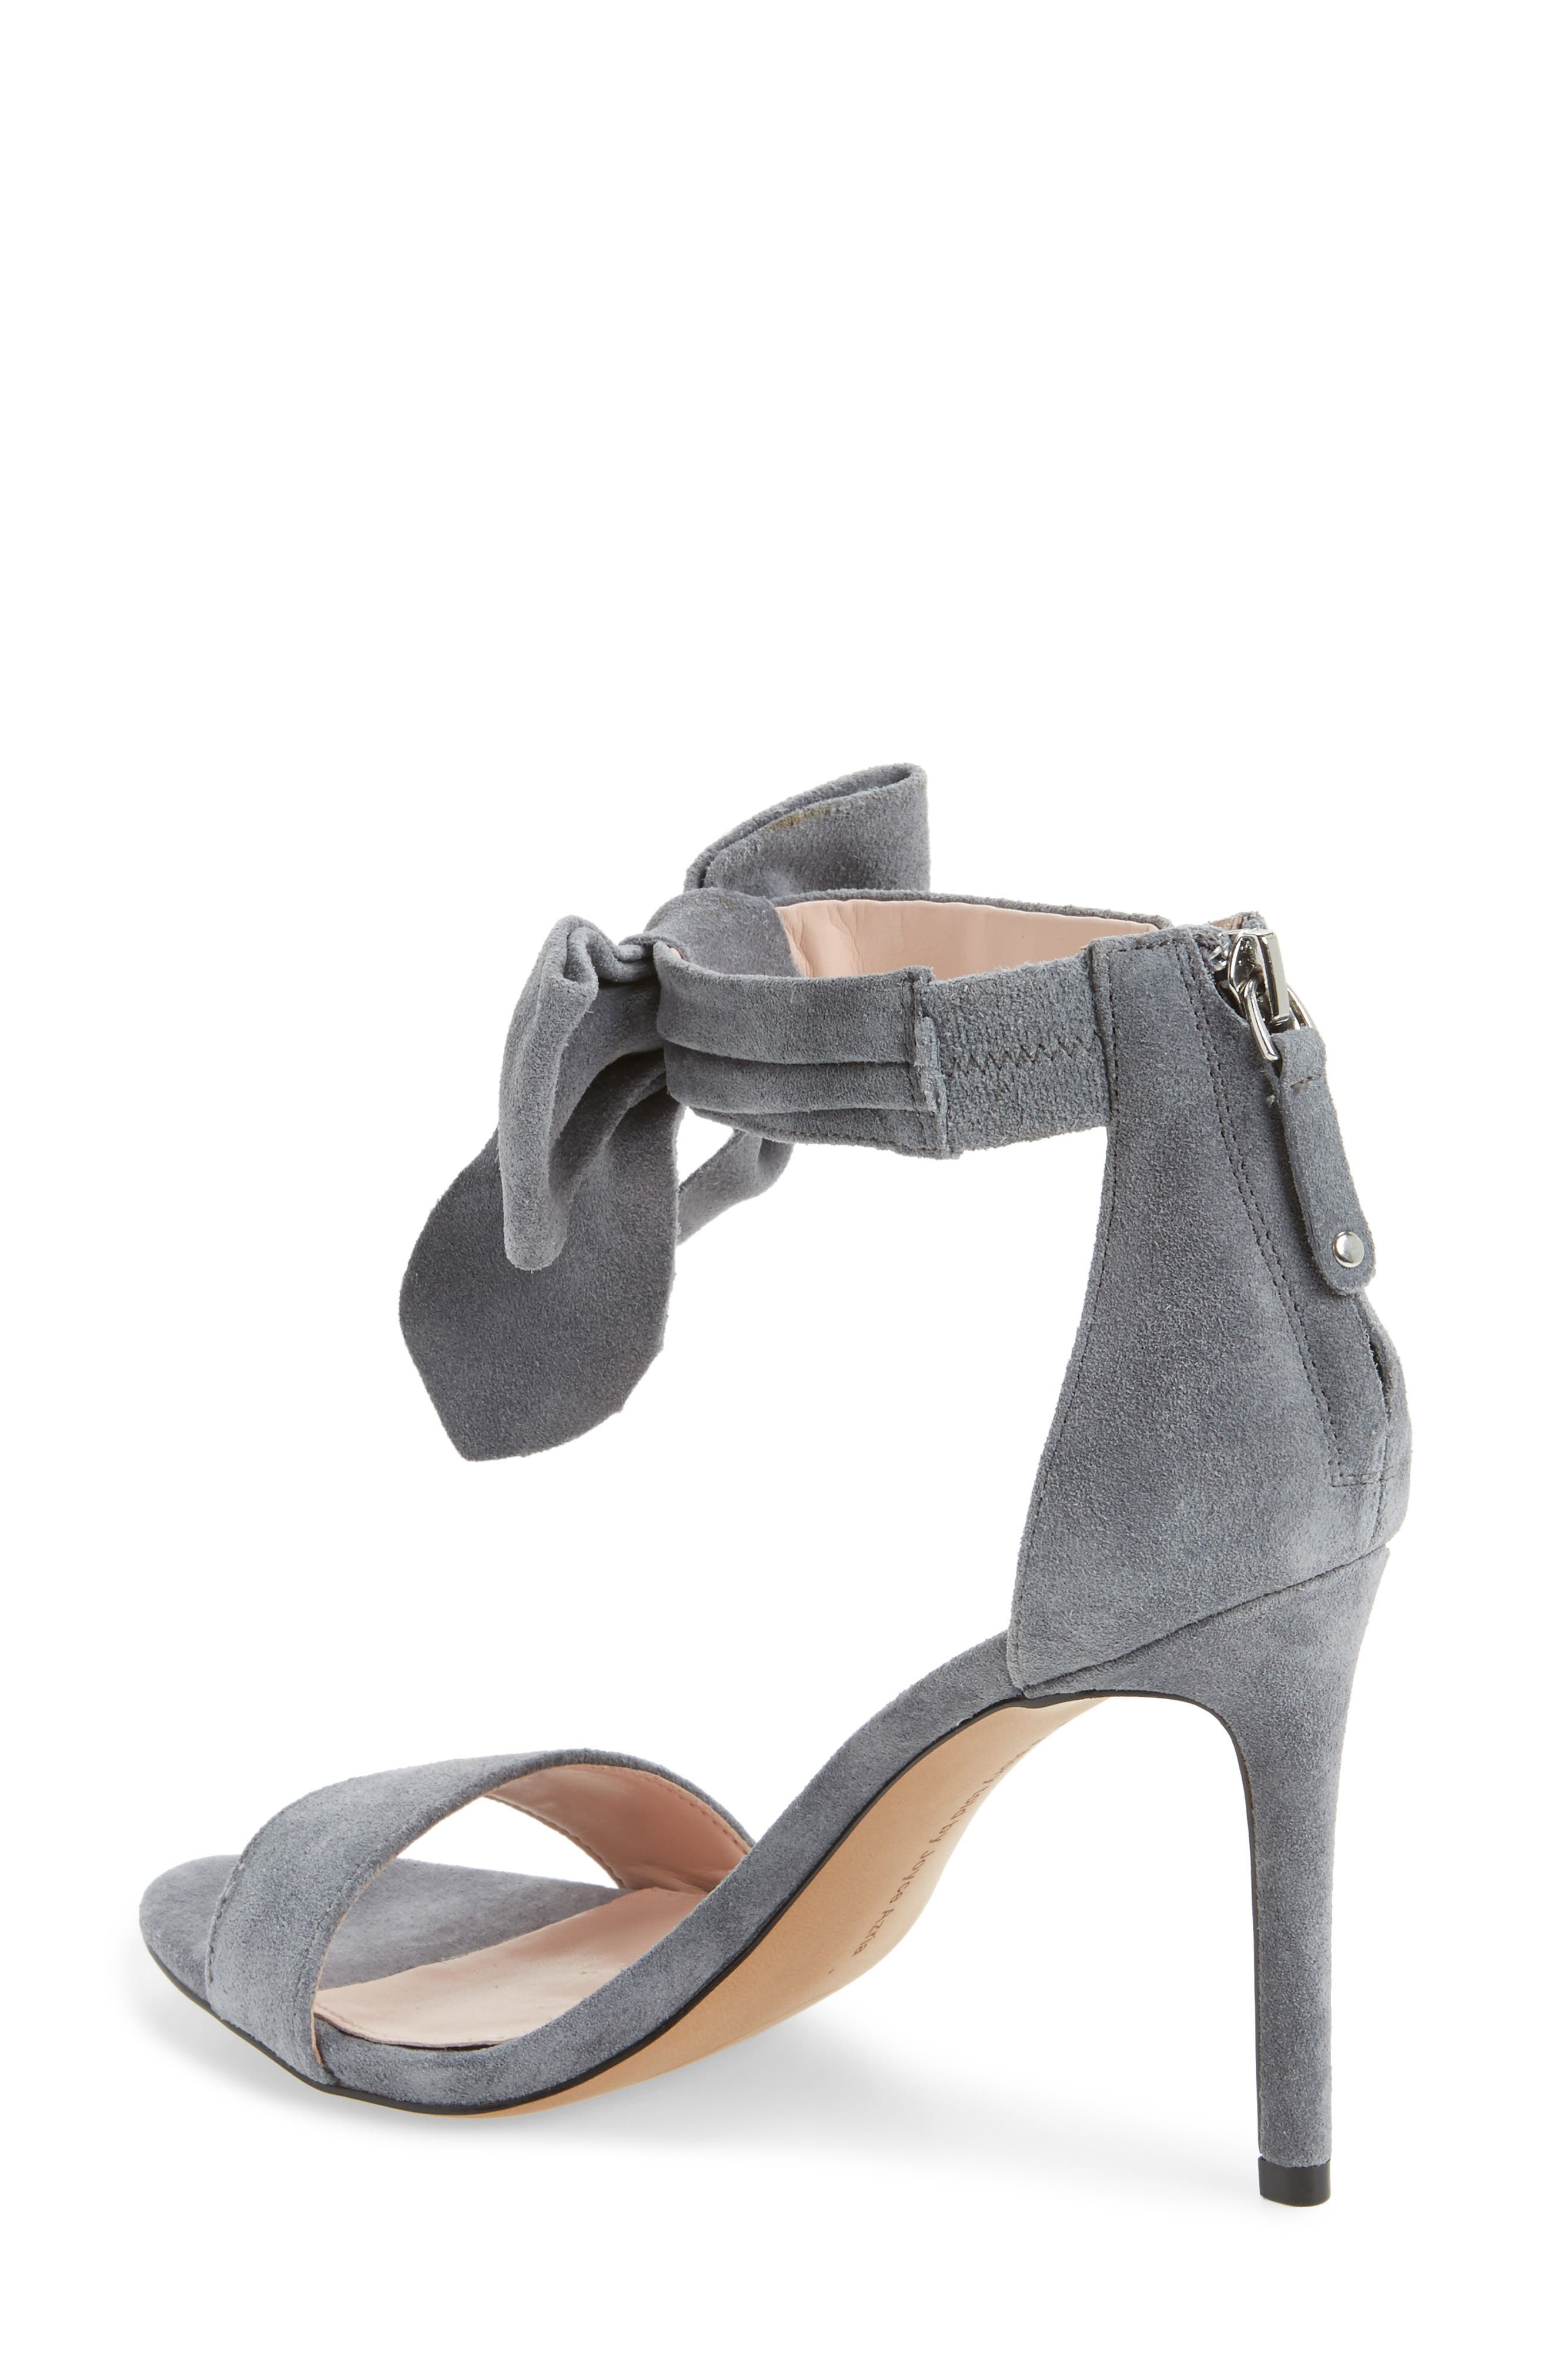 Jax Ankle Bow Pump,                             Alternate thumbnail 2, color,                             Grey Suede